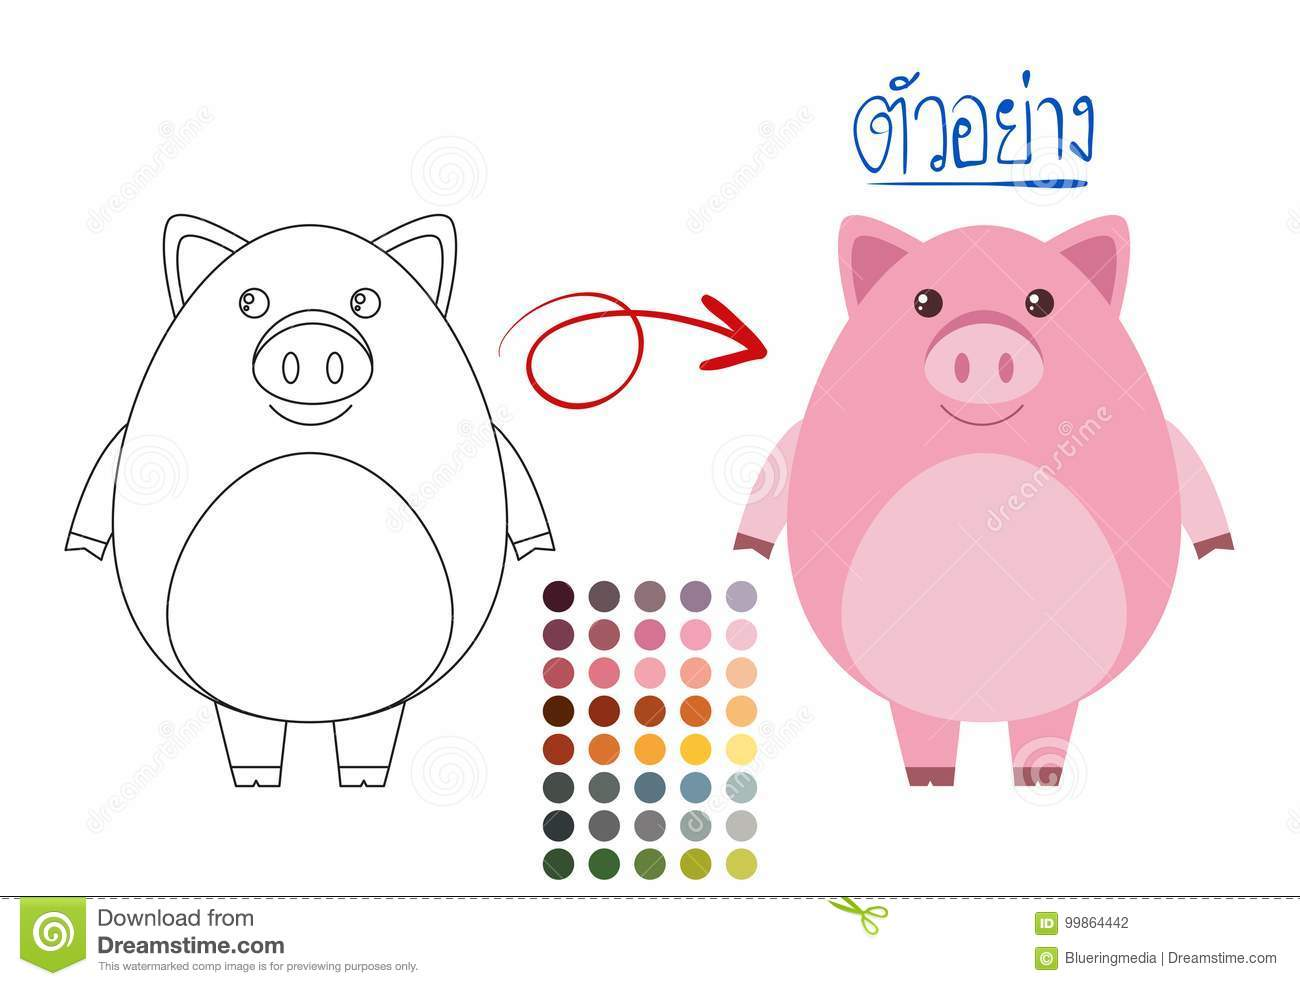 Sample Drawing Template With Cute Pig Stock Vector